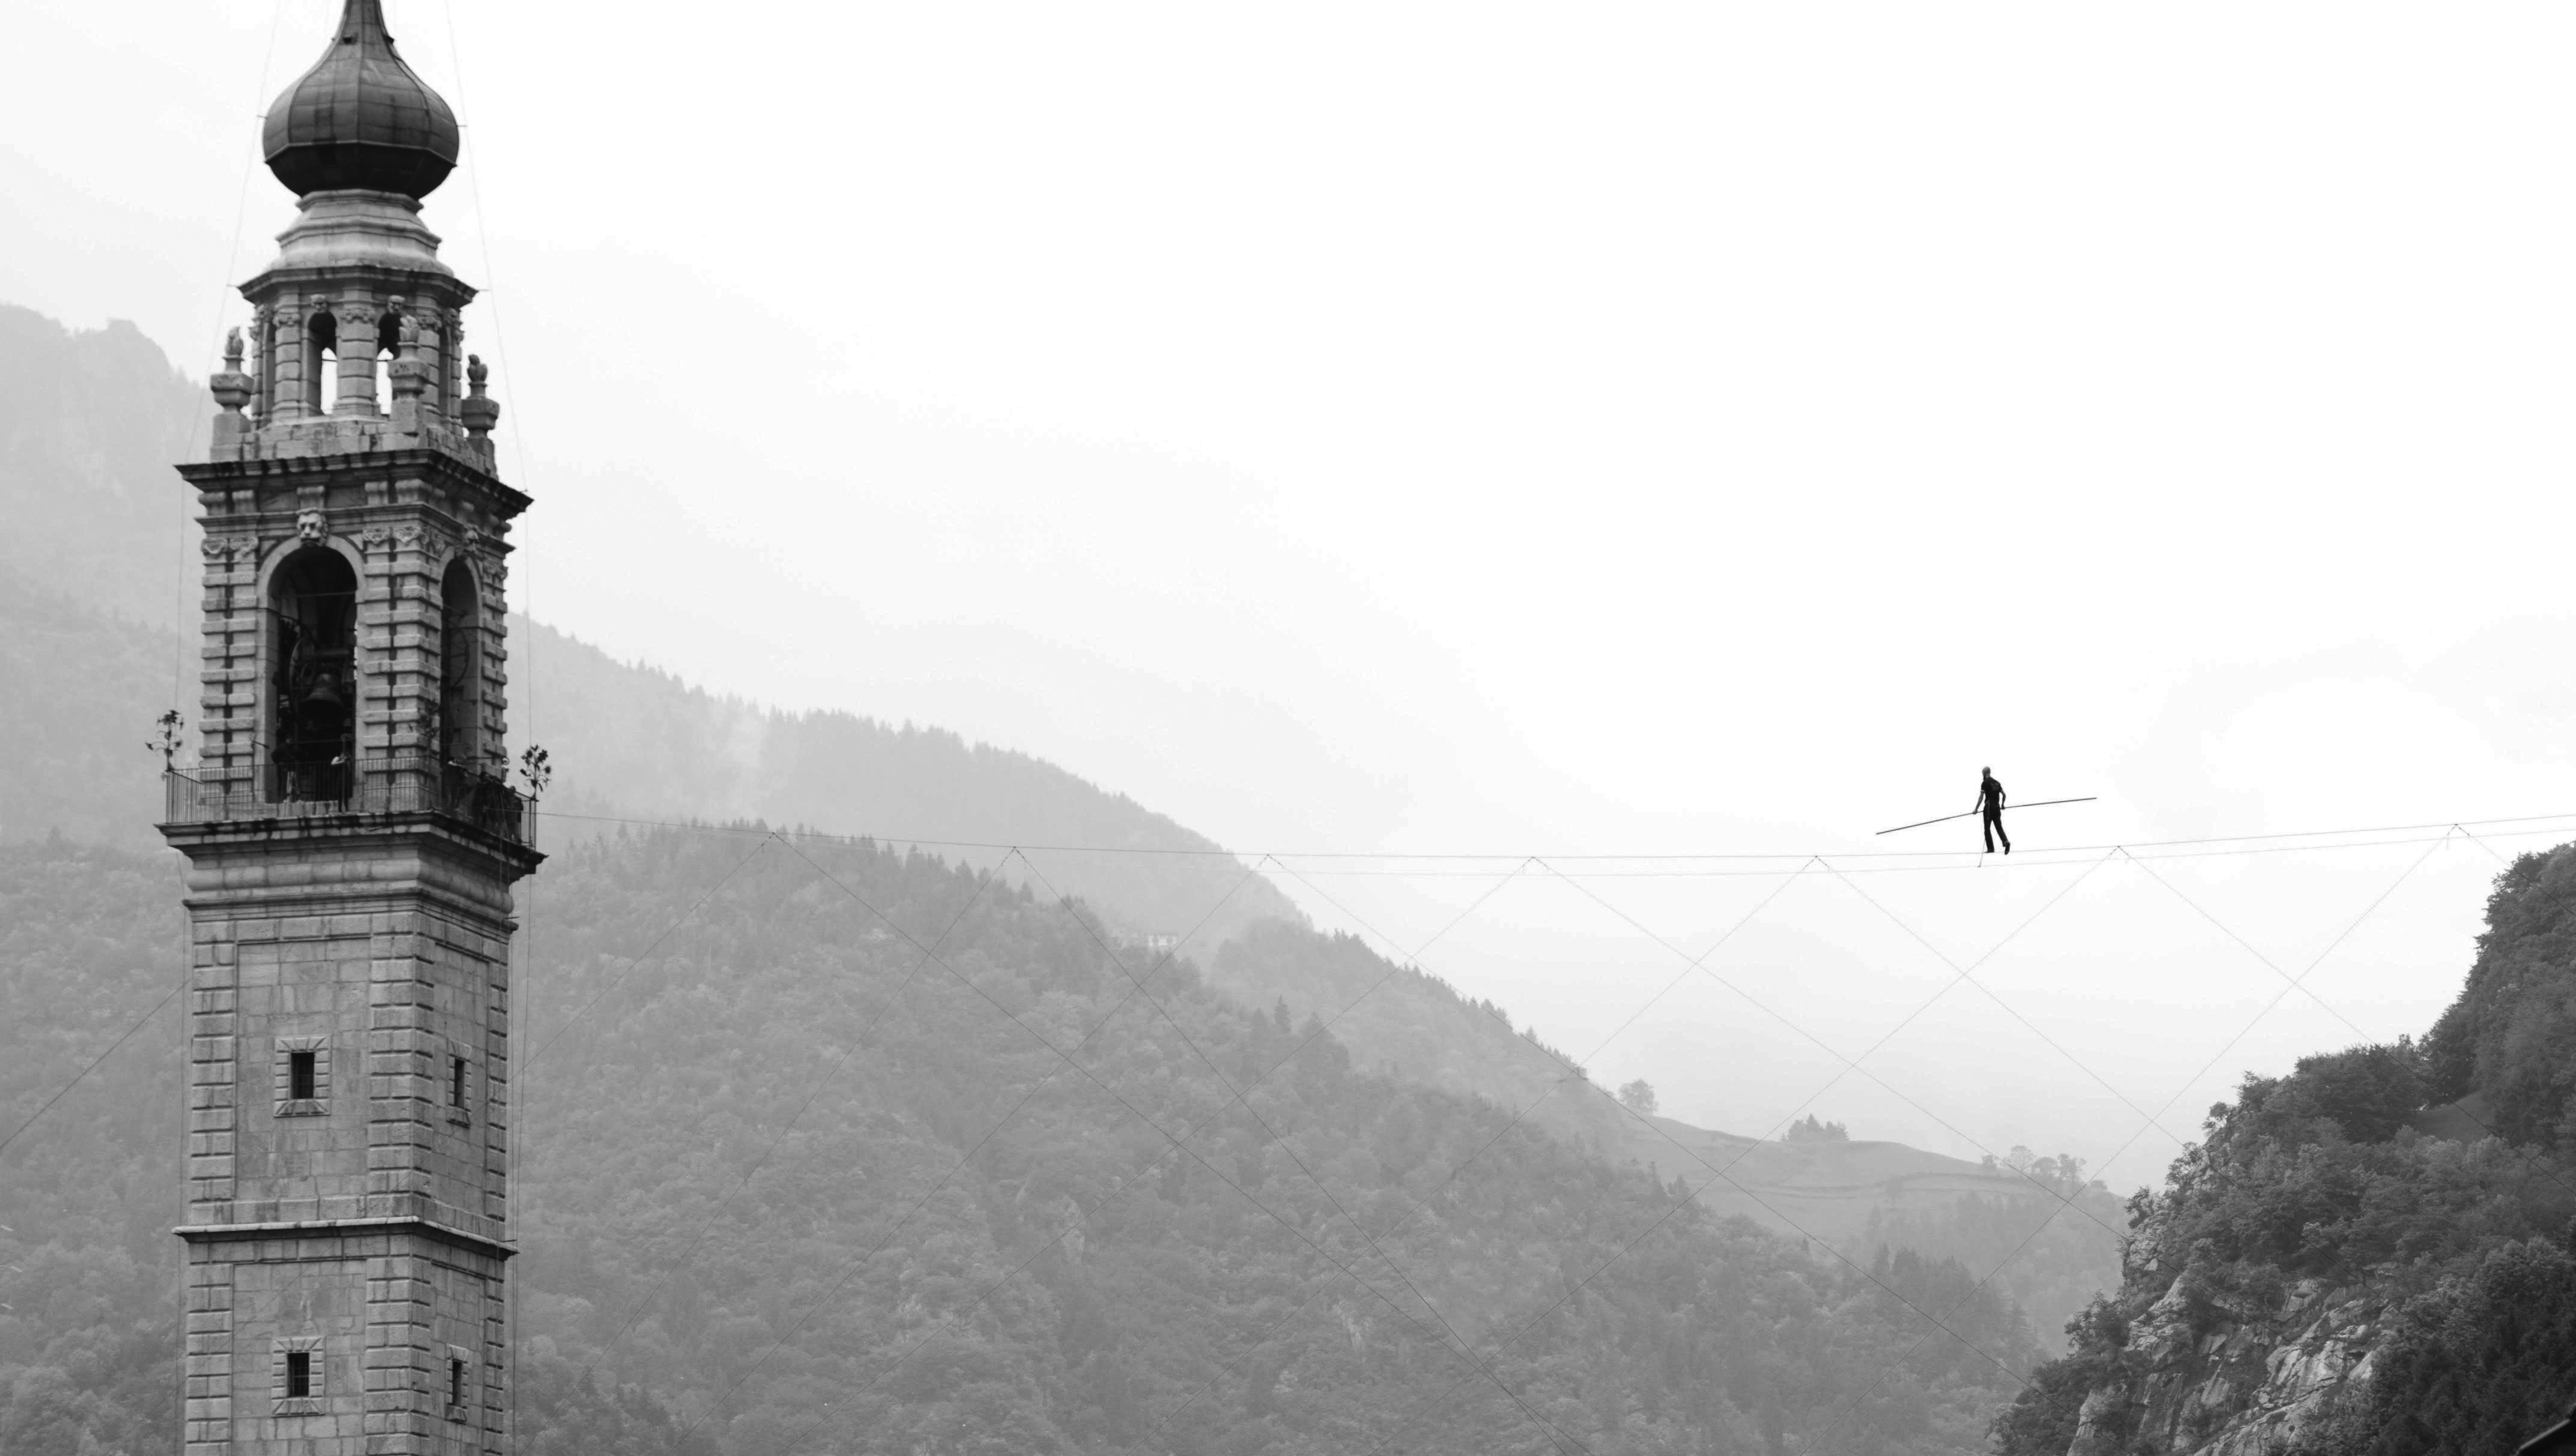 Tightrope | Turin, Italy | Andrea Loreni - High wire walker | Funly